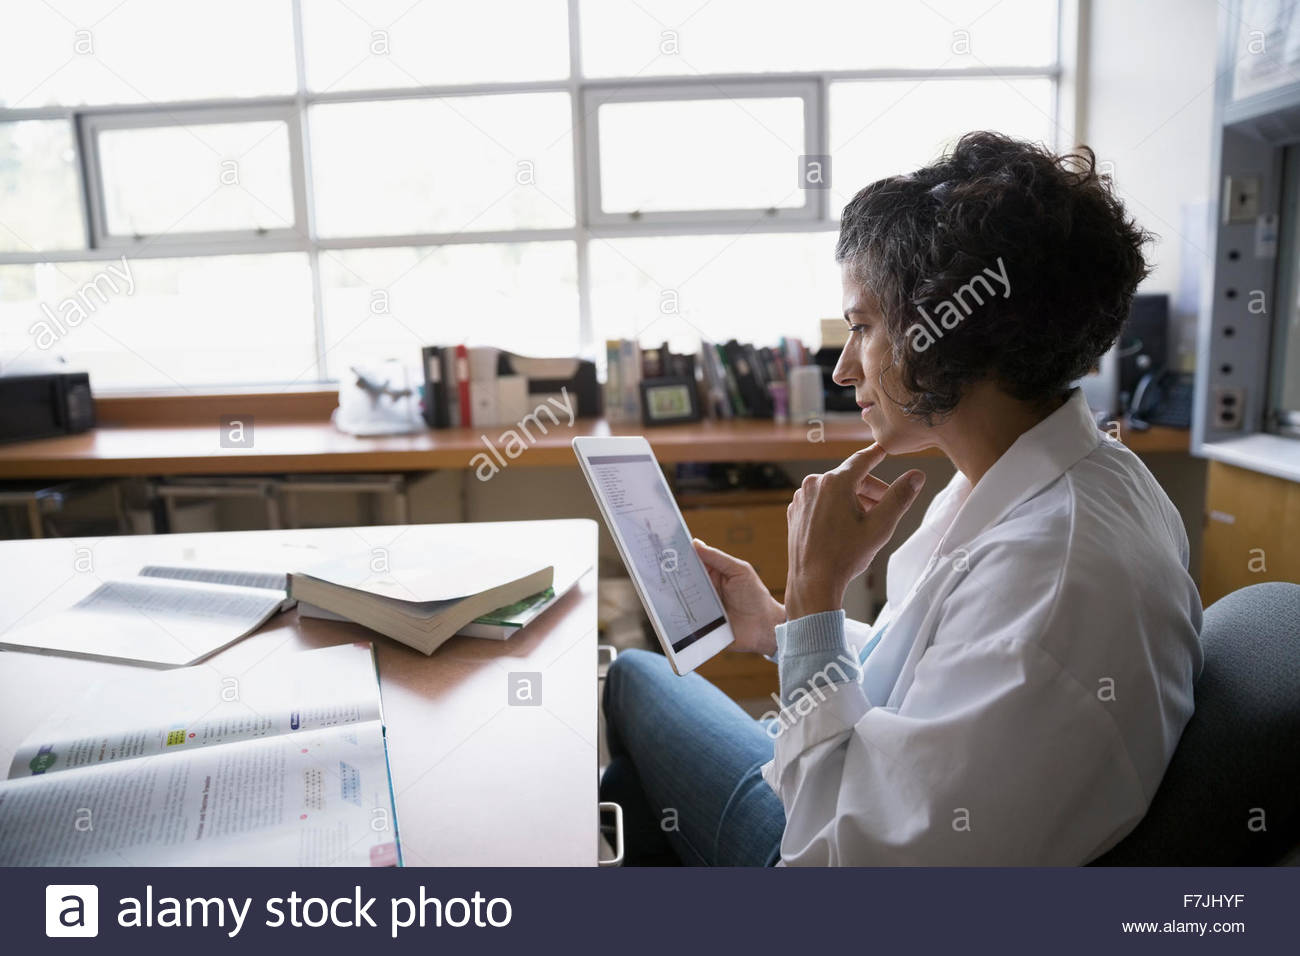 Focused teacher using digital tablet at desk - Stock Image